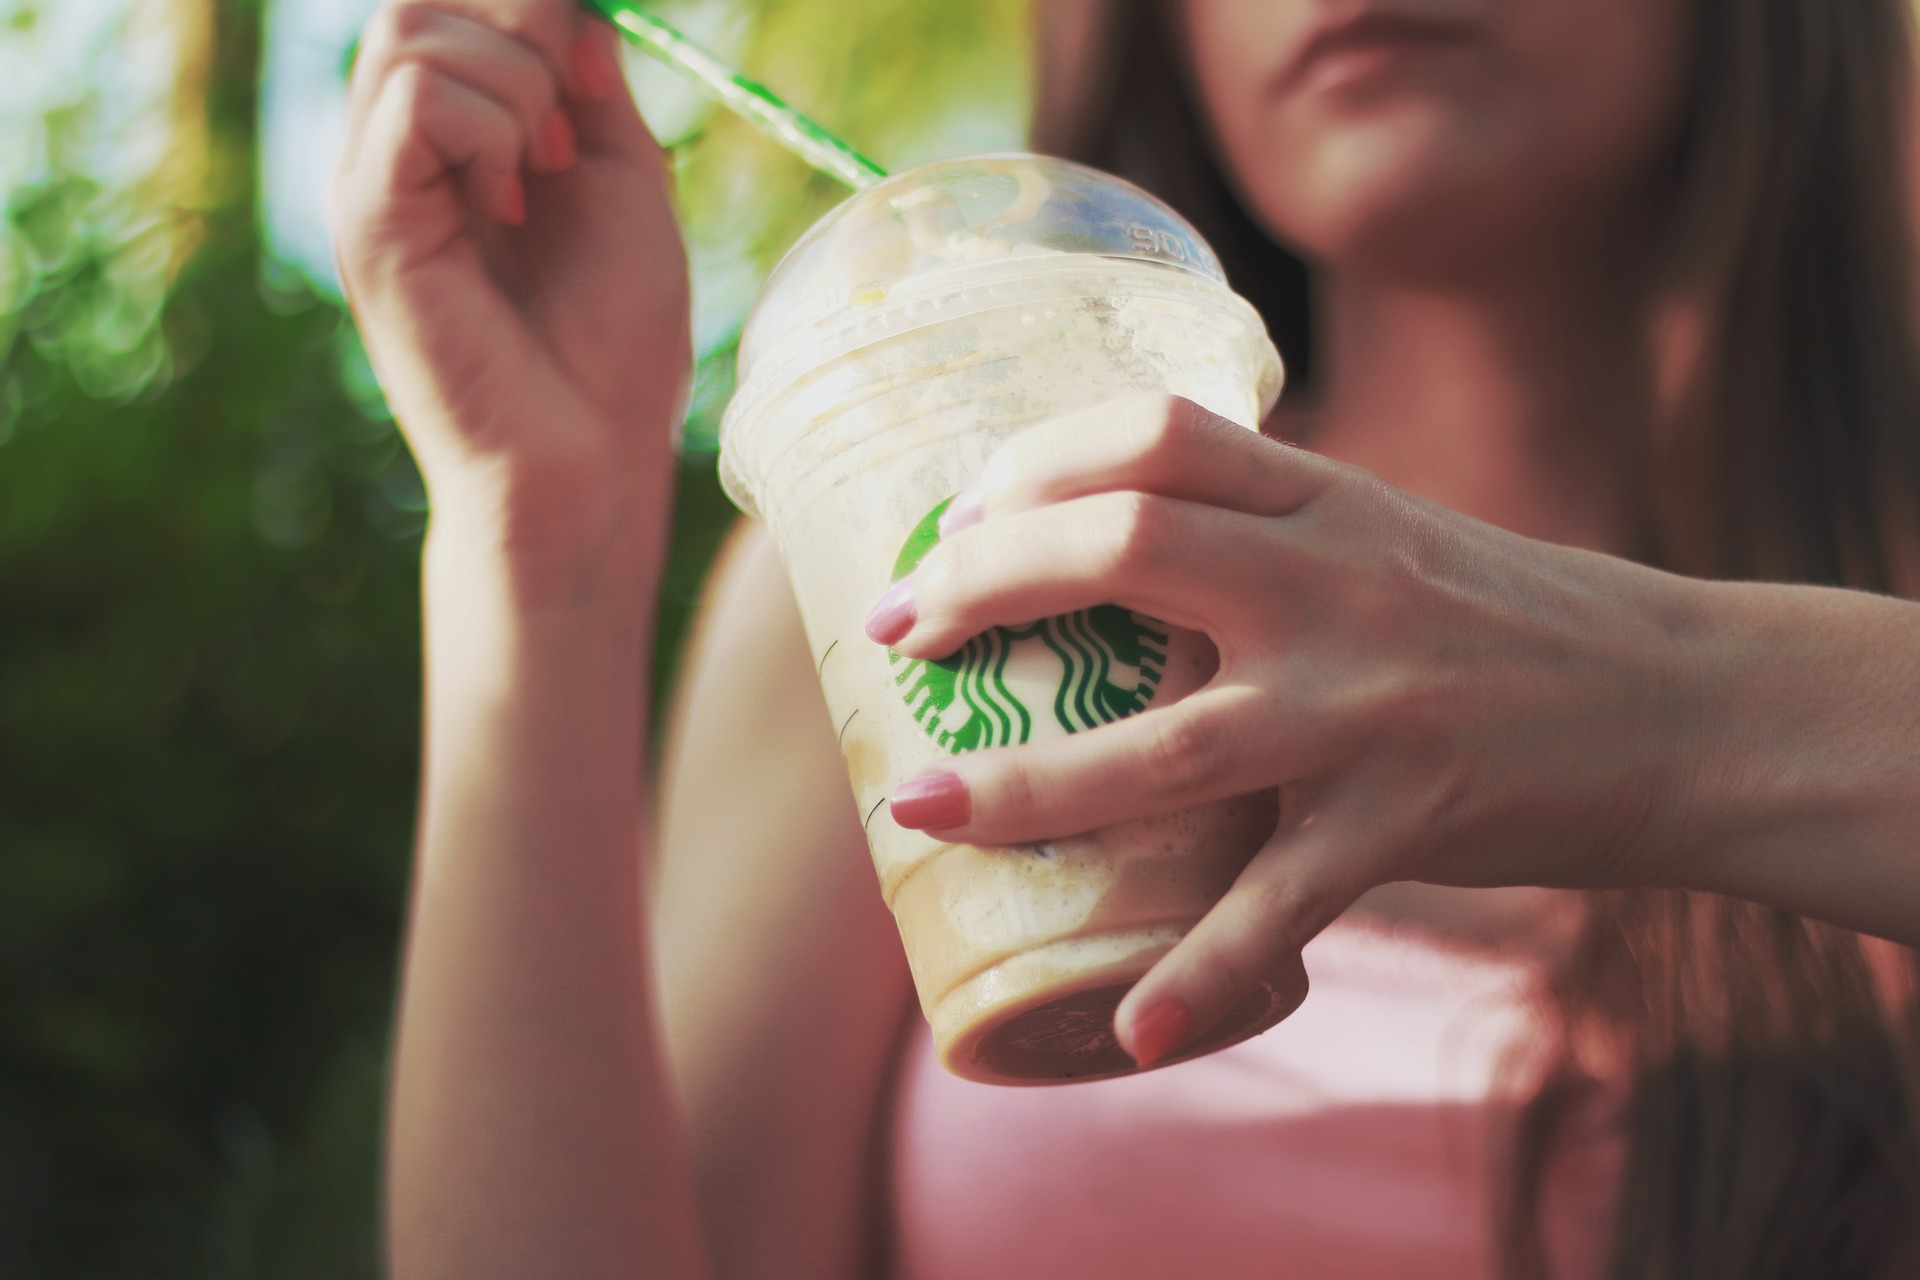 Starbucks recently brought back the much-loved s'mores frappuccino for the summer, along with new drinks like a mocha cookie crumble frappe.